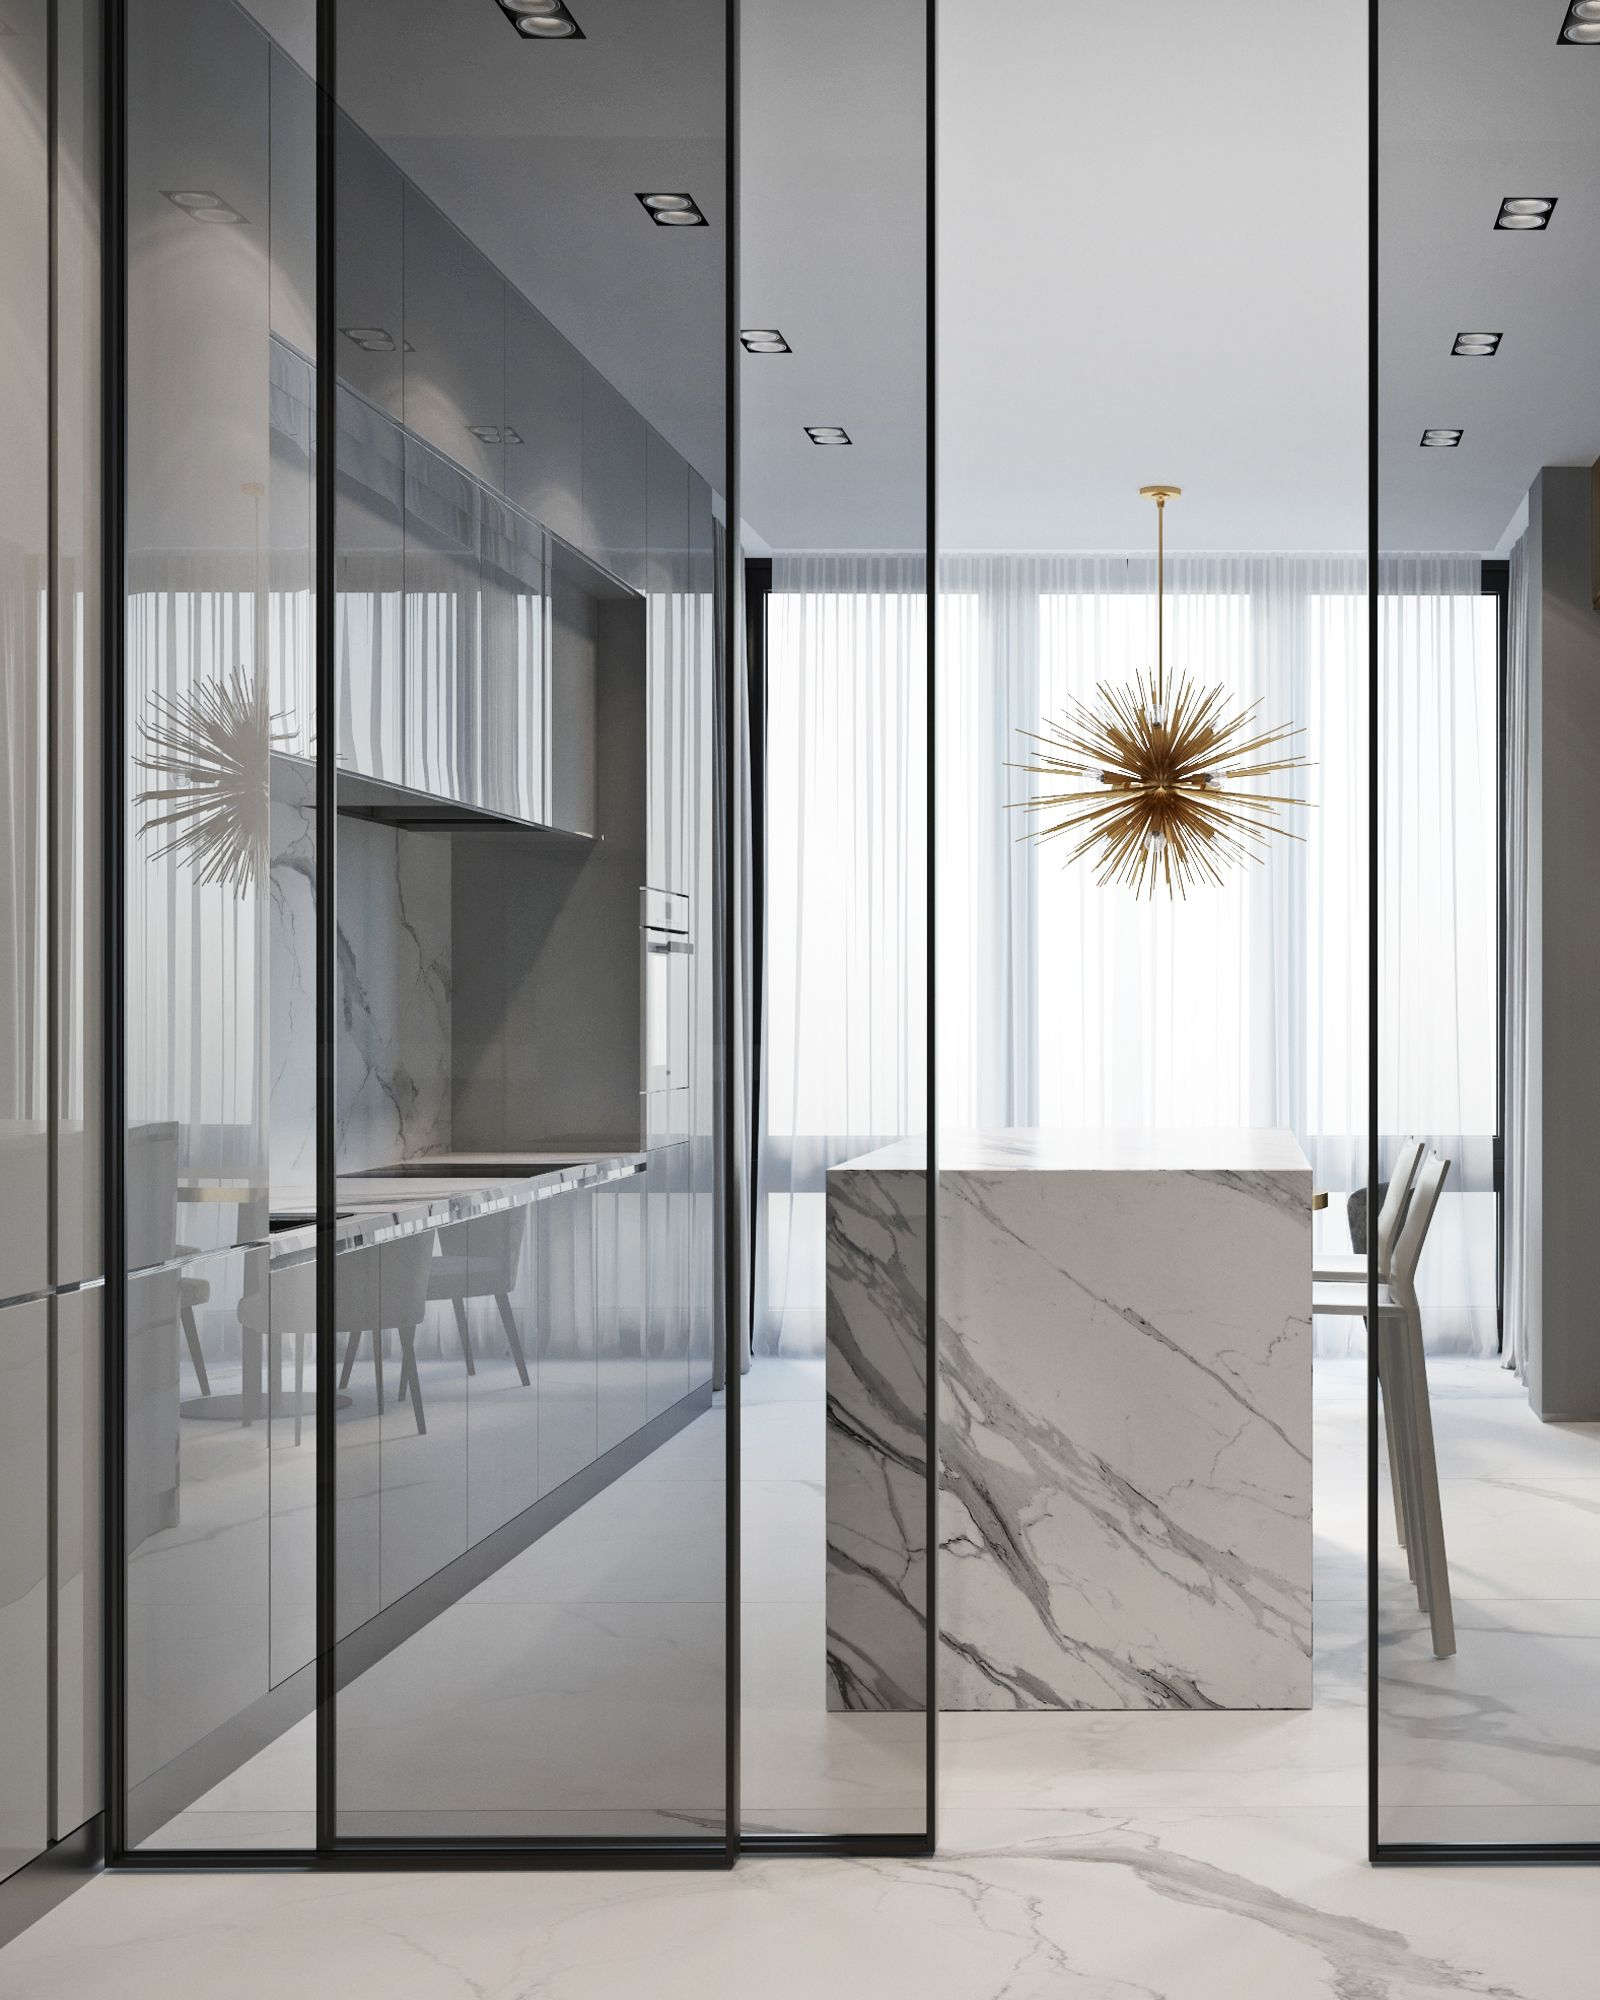 This Flat In Moscow Is A Luxury Mid Century Design Paradise Unique Blog Luxury Home Decor Home Interior Design Glass Doors Interior